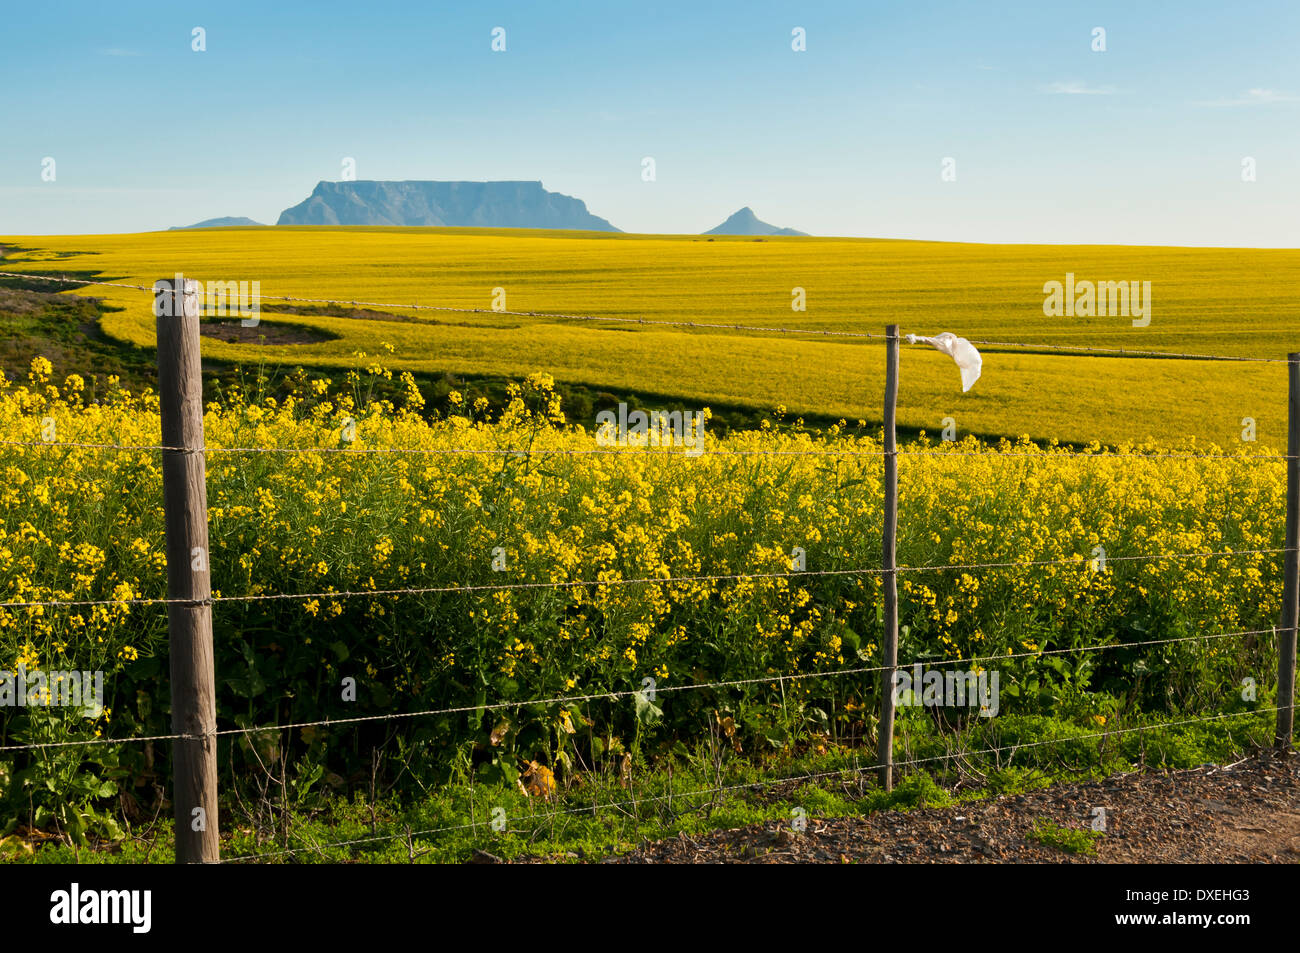 View of Table Mountain with fields of Canola flowers and a polluted plastic bag stuck on a fence Stock Photo